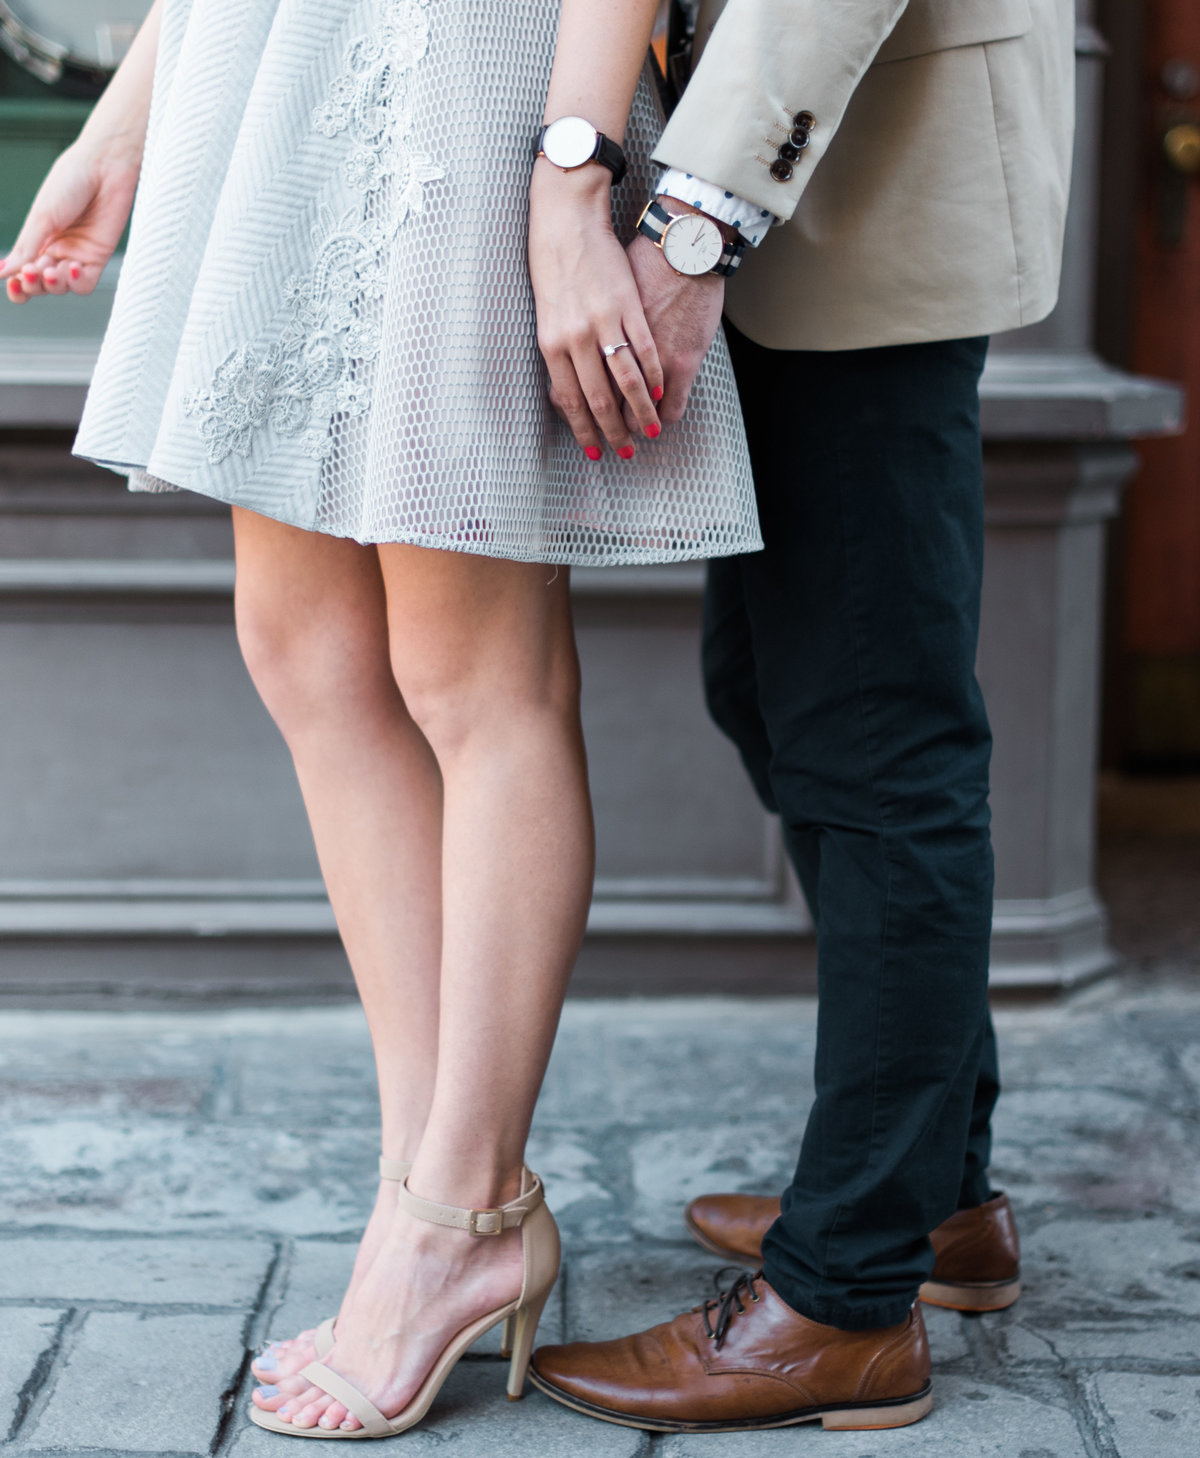 Harry Potter World Engagement photos Daniel  Wellington